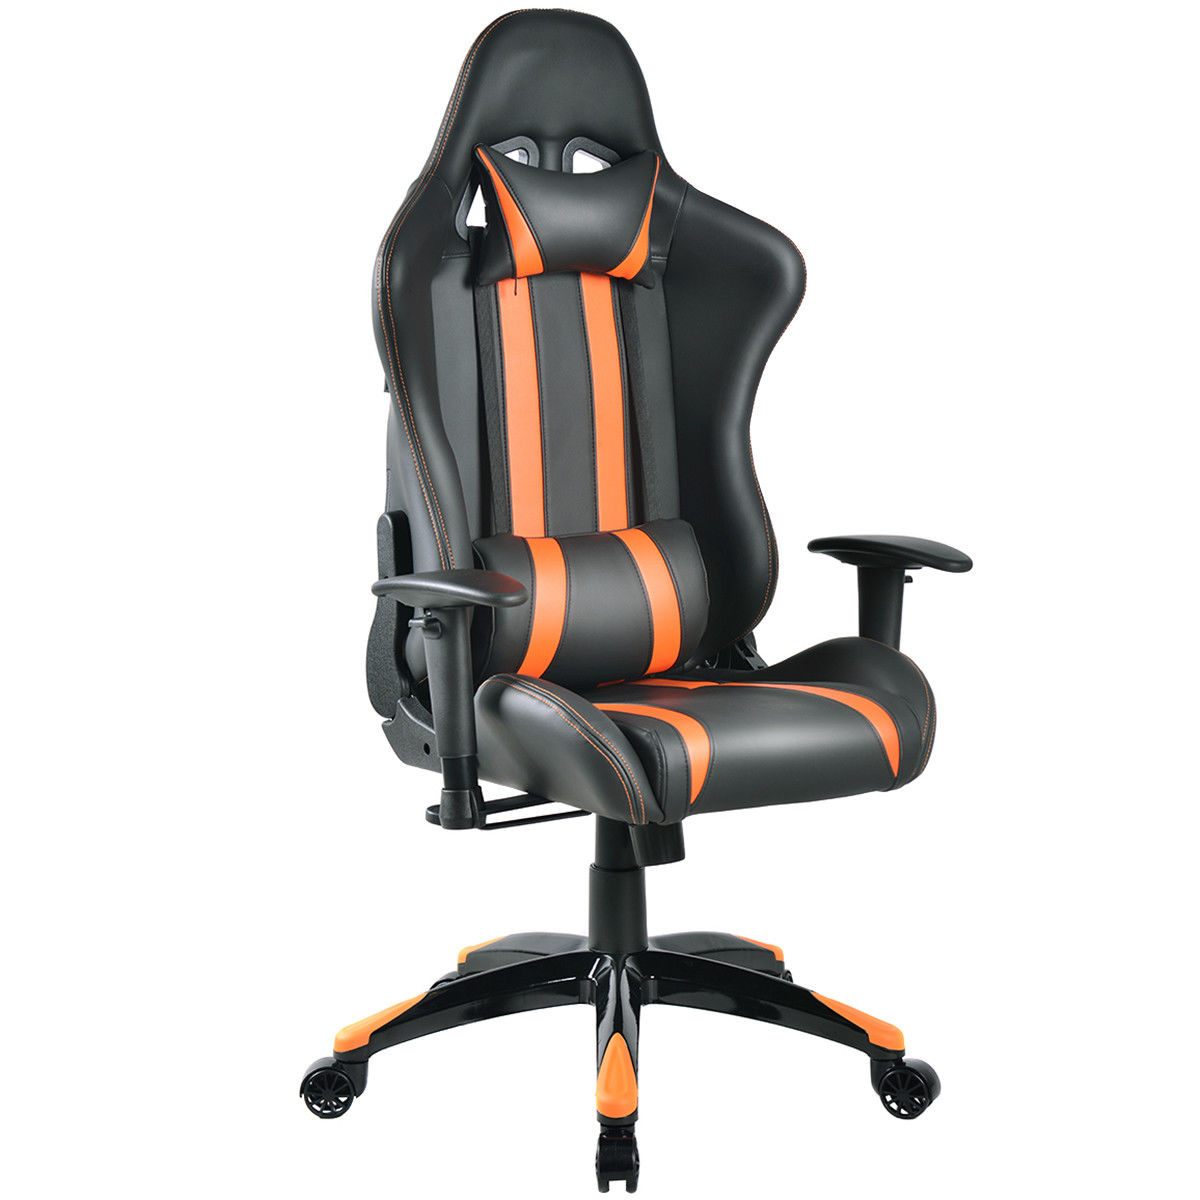 Best Office Chair India Hyderabad Ideas And Get Free Shipping E1l19jk5